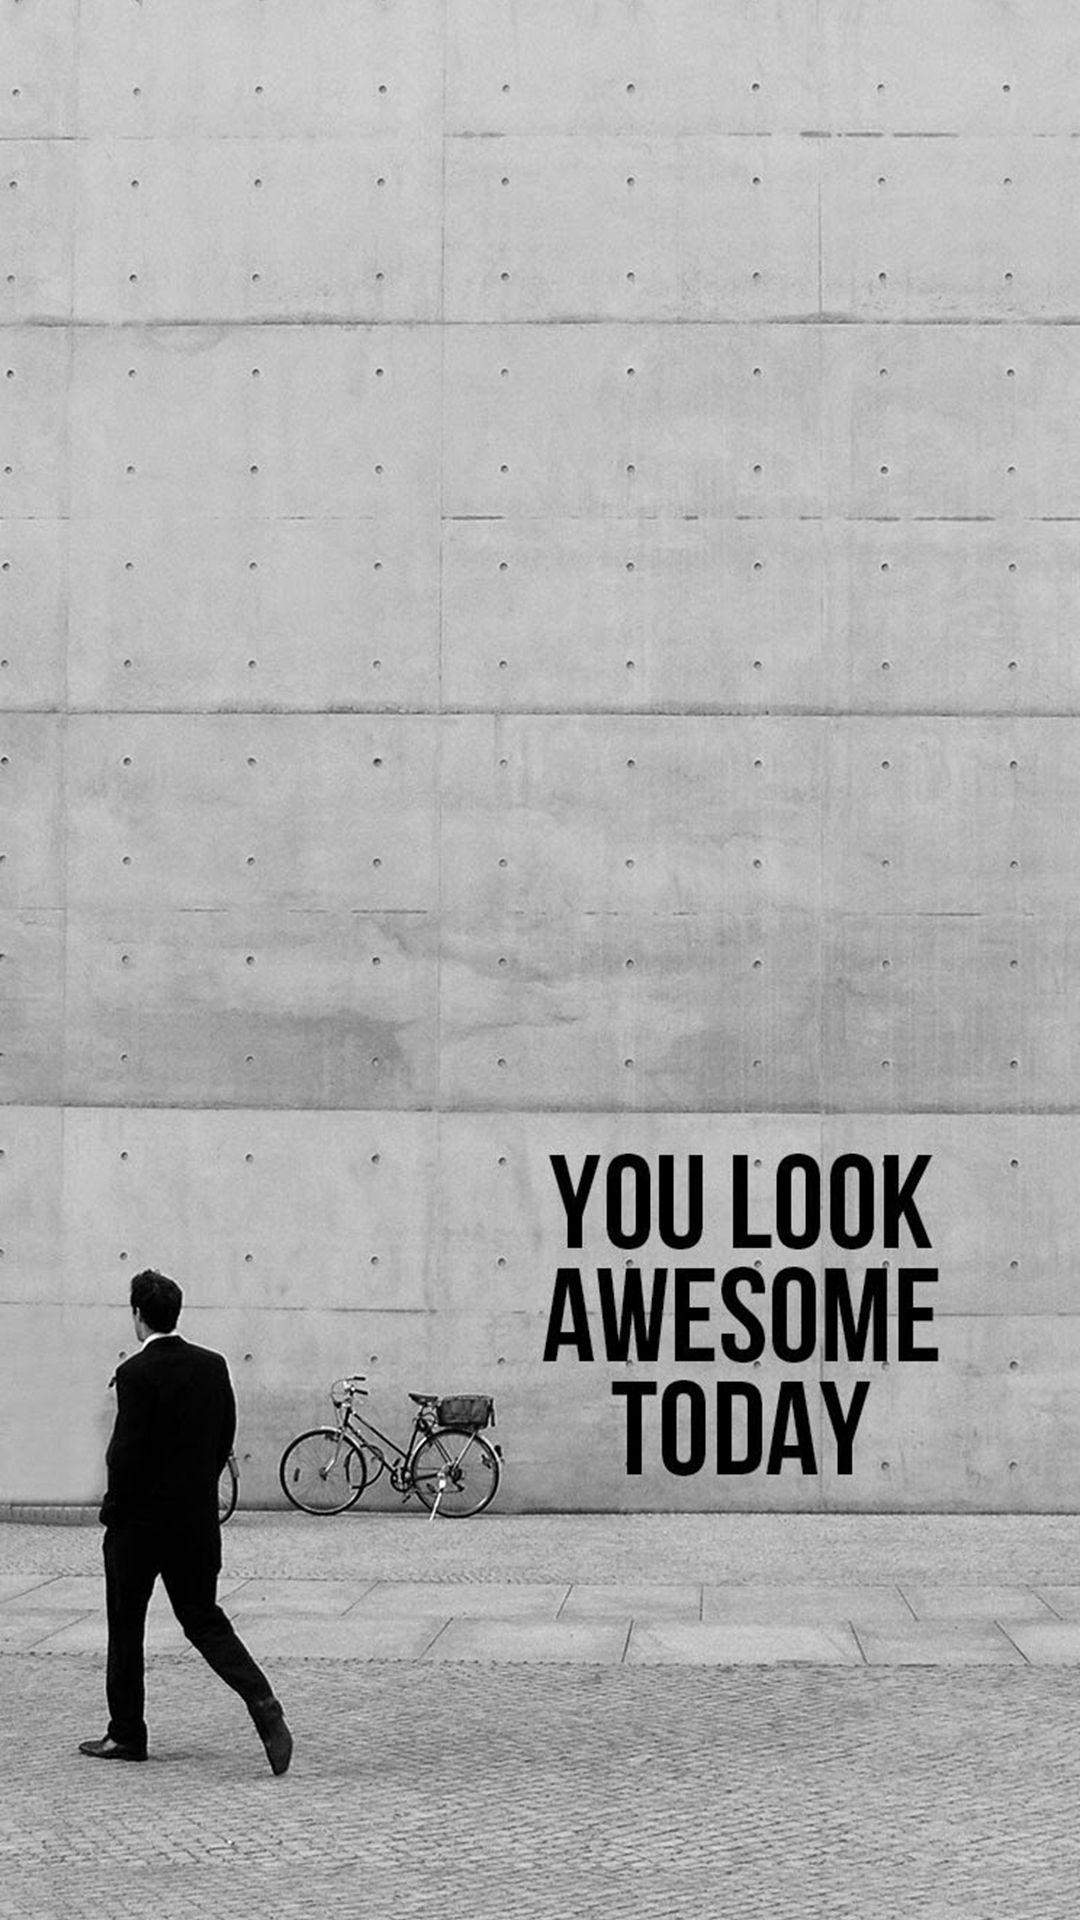 You Look Awesome Today iPhone wallpaper Wallpapers Pinterest